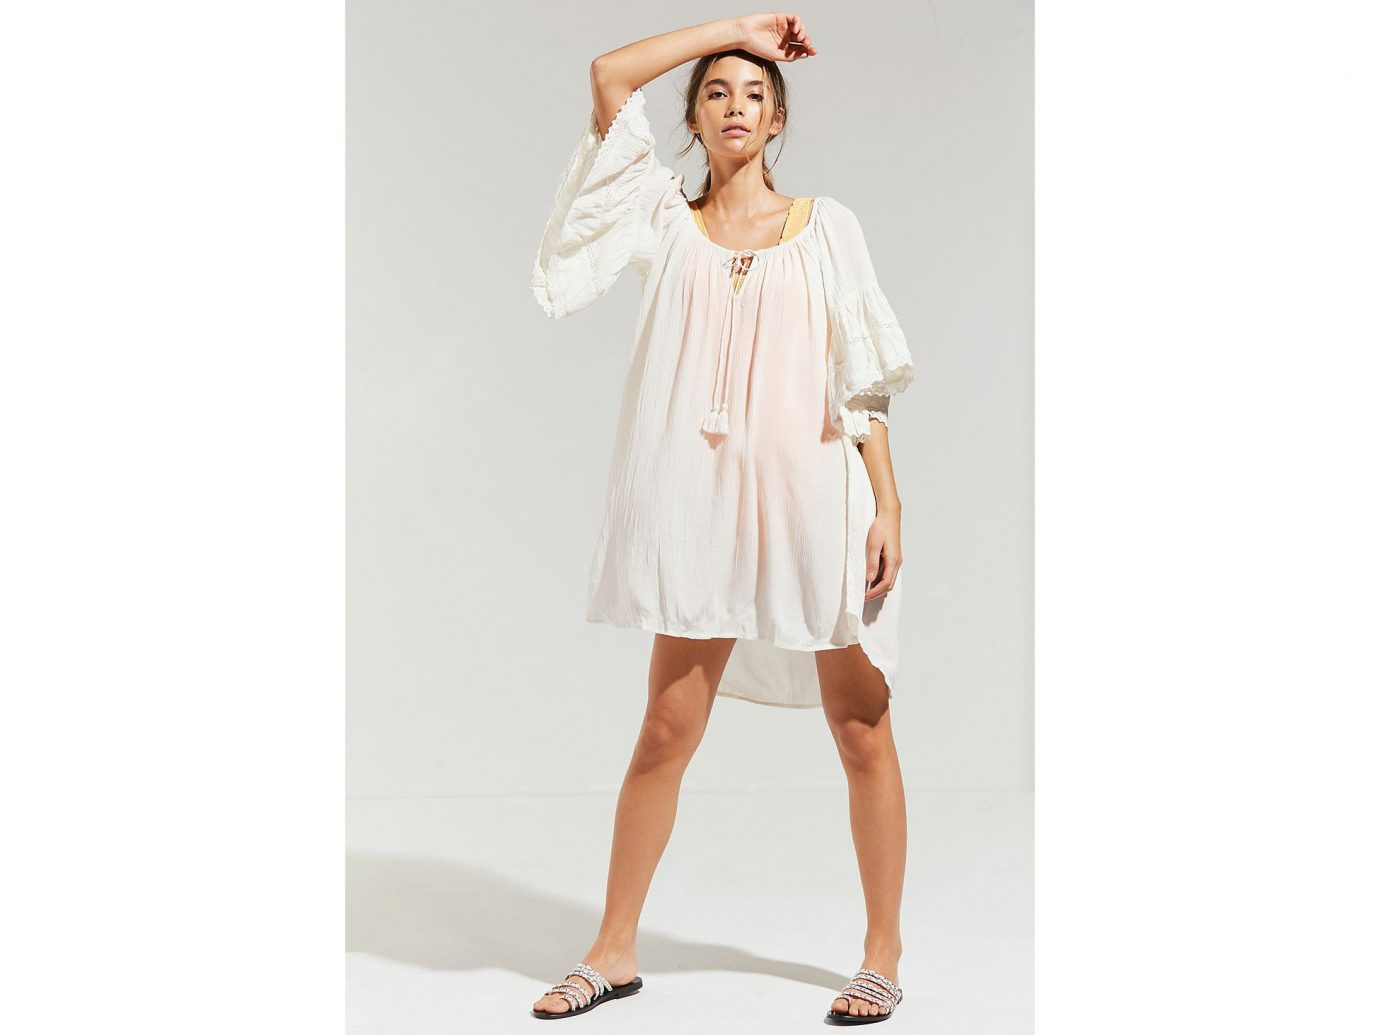 Trip Ideas dress clothing fashion model person day dress shoulder costume sleeve joint white neck posing dressed cocktail dress fashion design